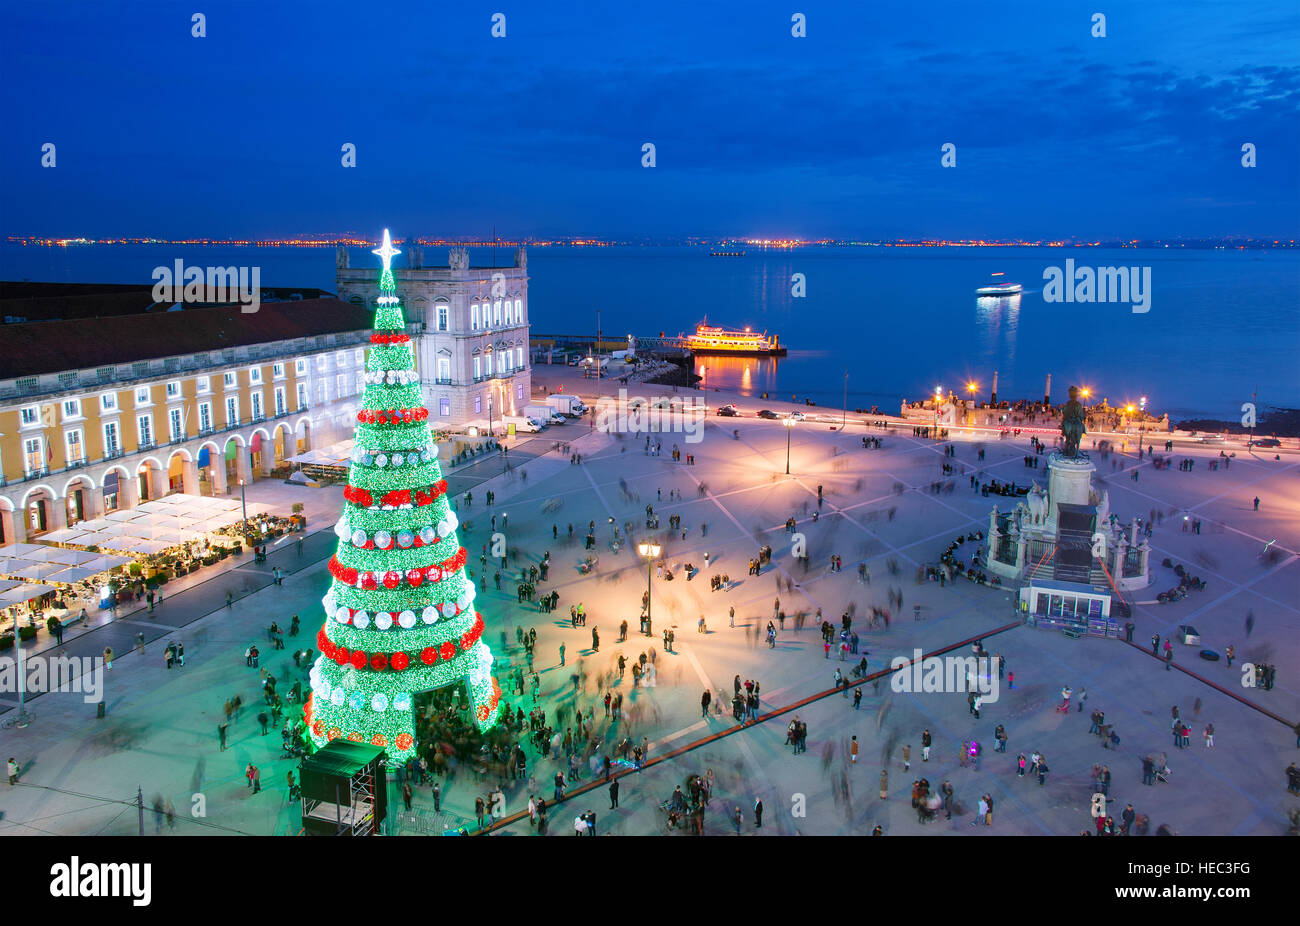 Christmas tree on Commerce square at twilight in Lisbon, Portugal - Stock Image